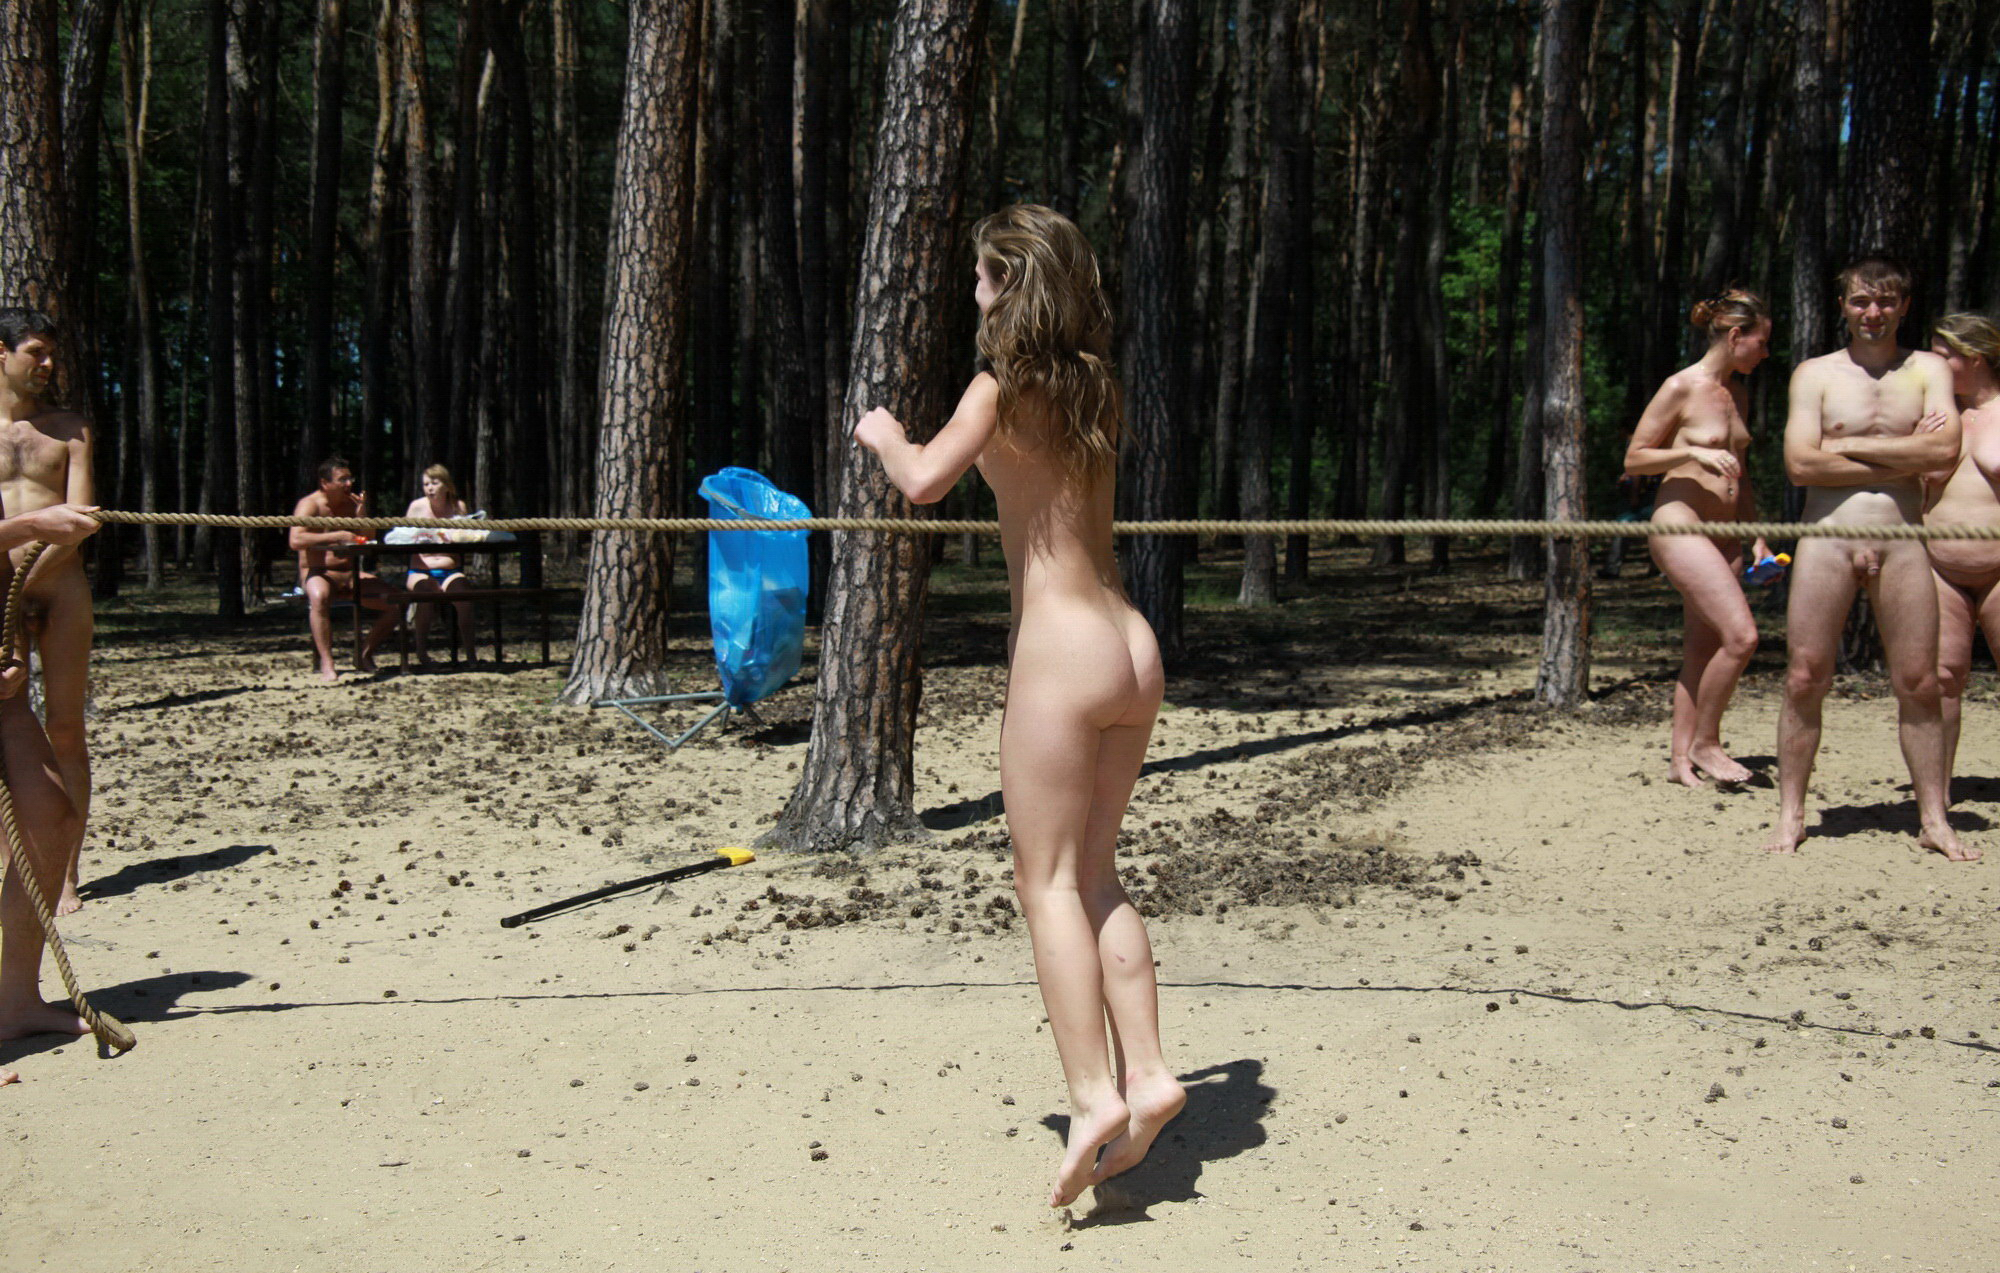 Nudists family nude beach - VoyeurPapa: http://voyeurpapa.com/2016/12/25/nudists-family-nude-beach-8/